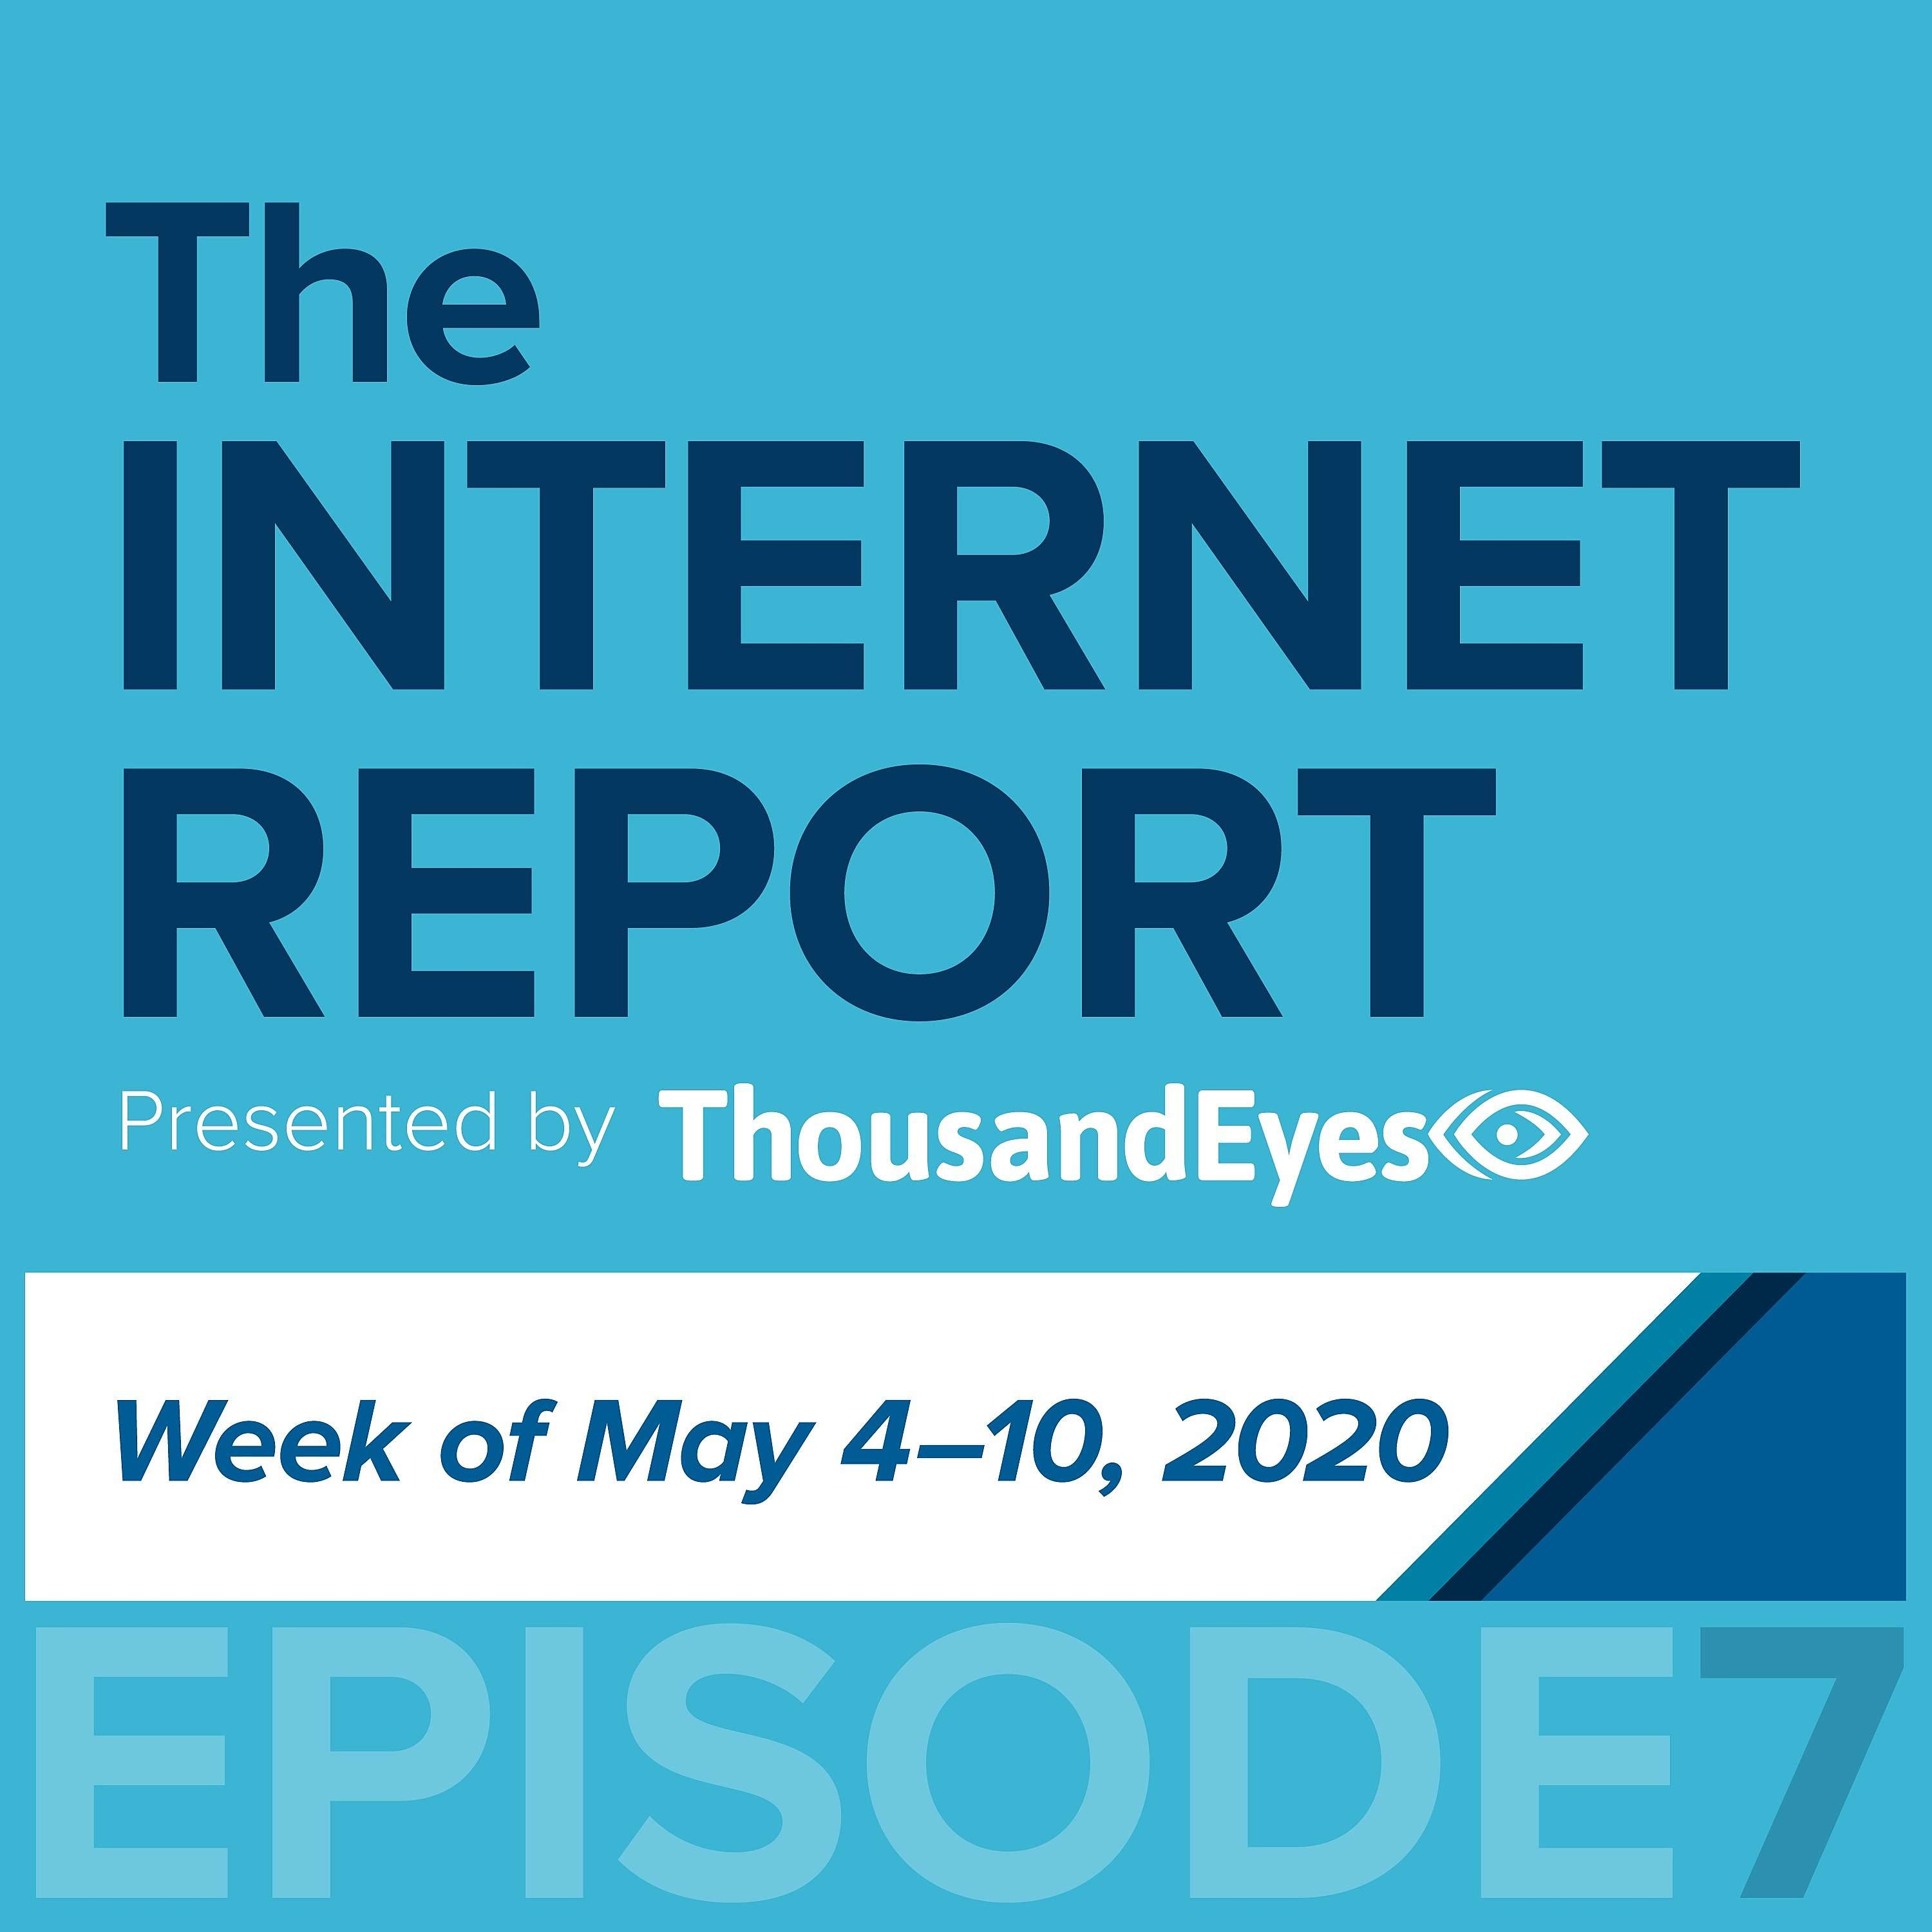 Ep. 7: Facebook SDK Snafu Sidelines Spotify & Others, Plus, AWS Global Accelerator… Accelerates(Week of May 4-10)